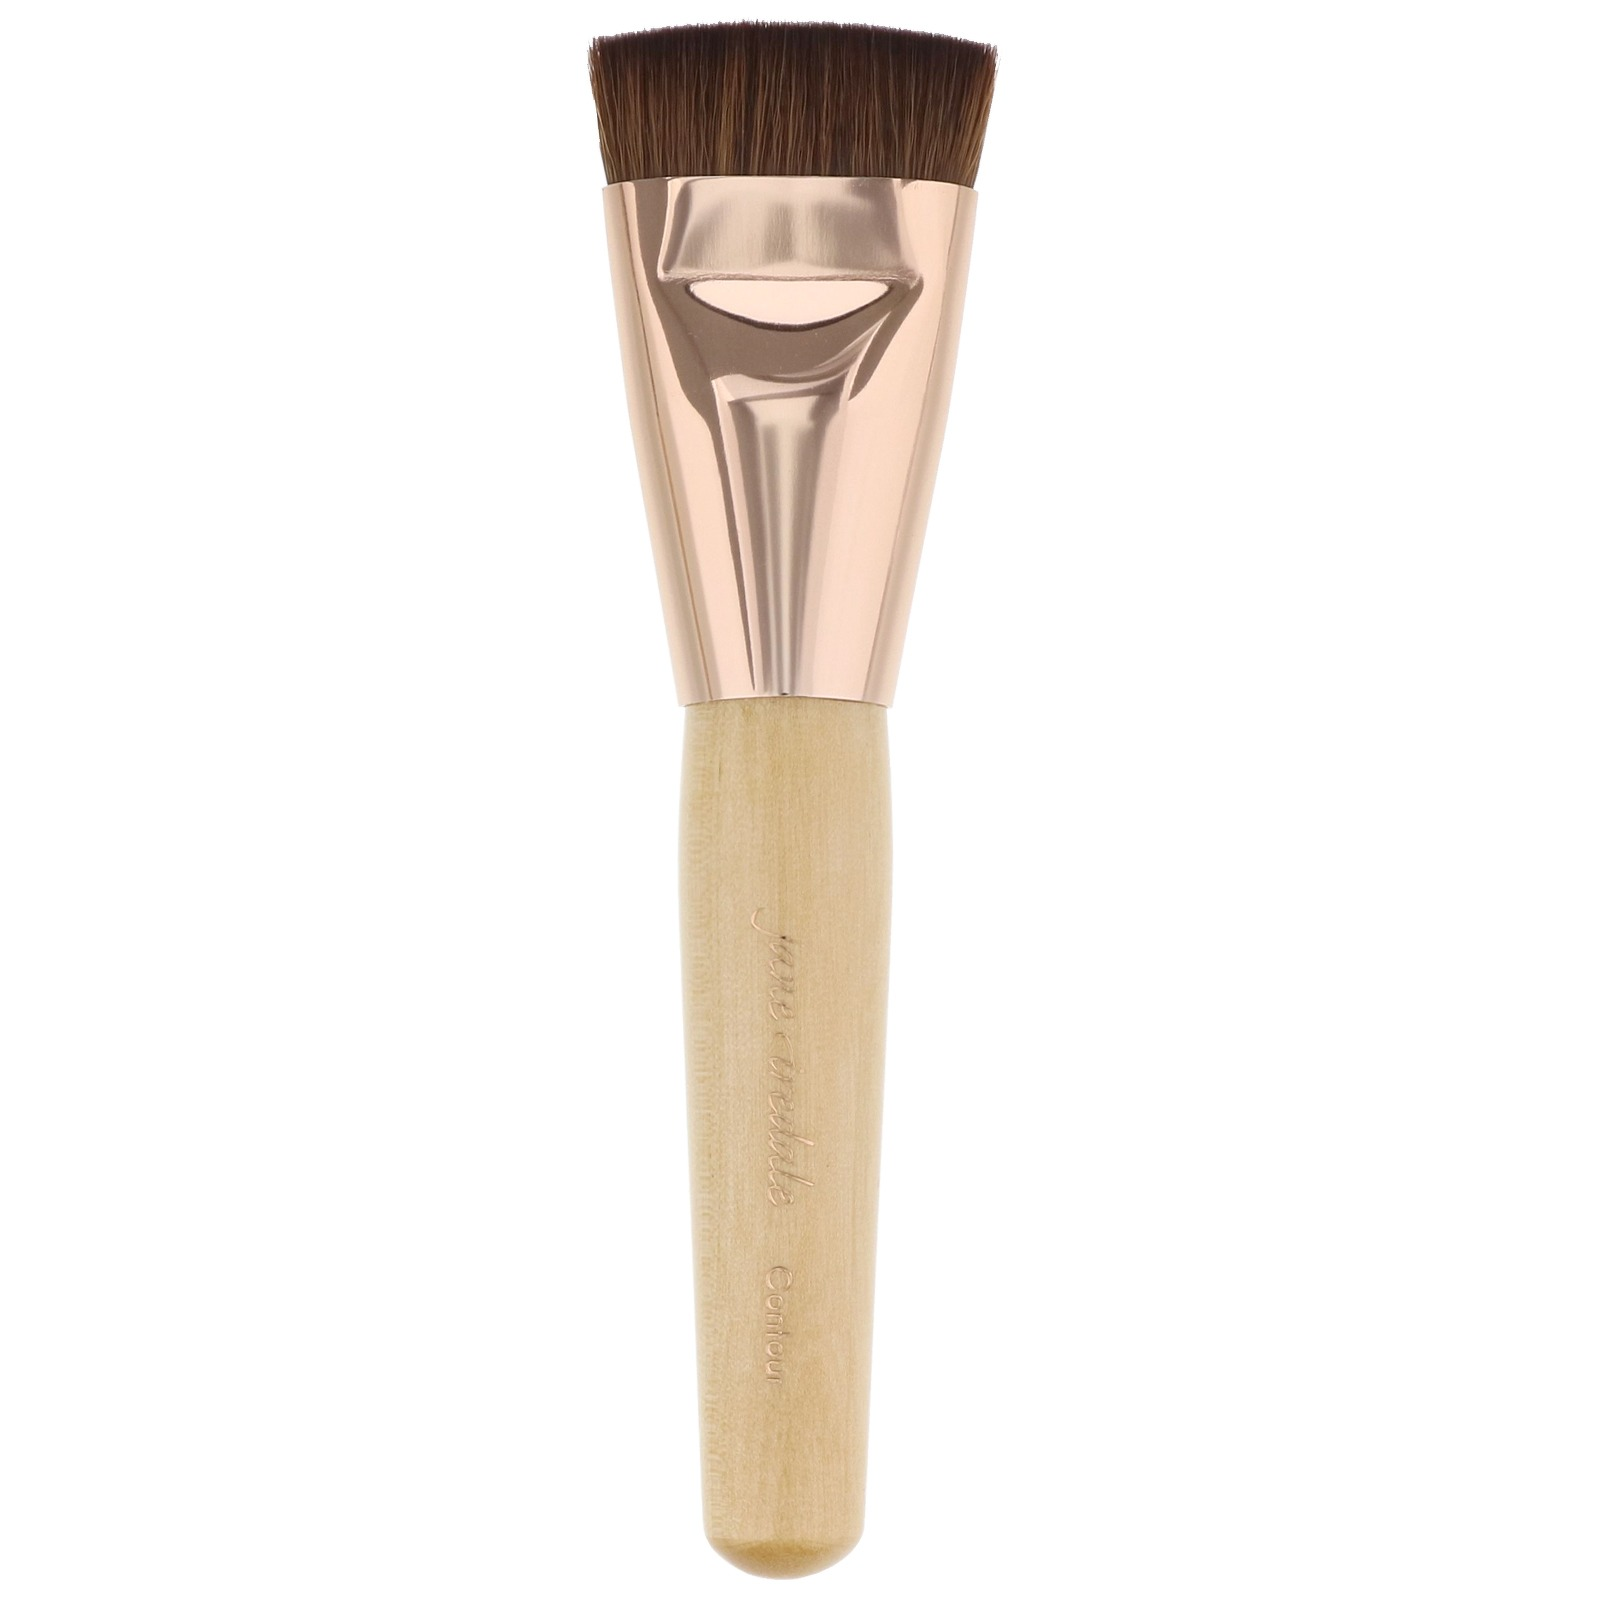 Jane Iredale Brushes Contour Brush Rose Gold